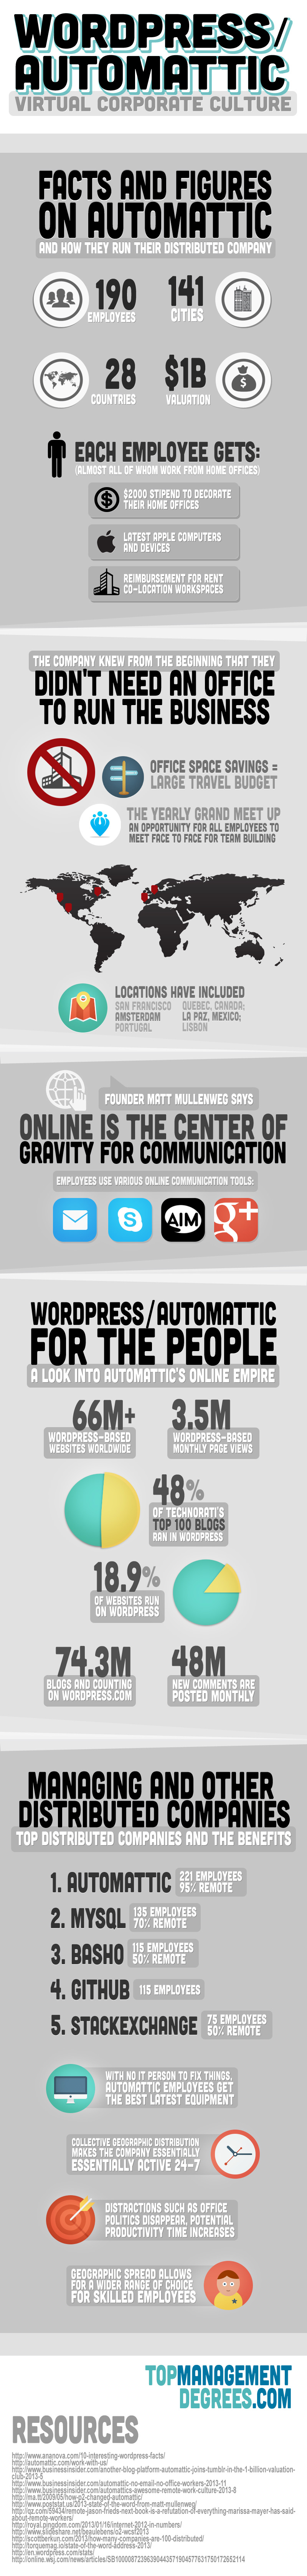 WordPressInfoGraphic